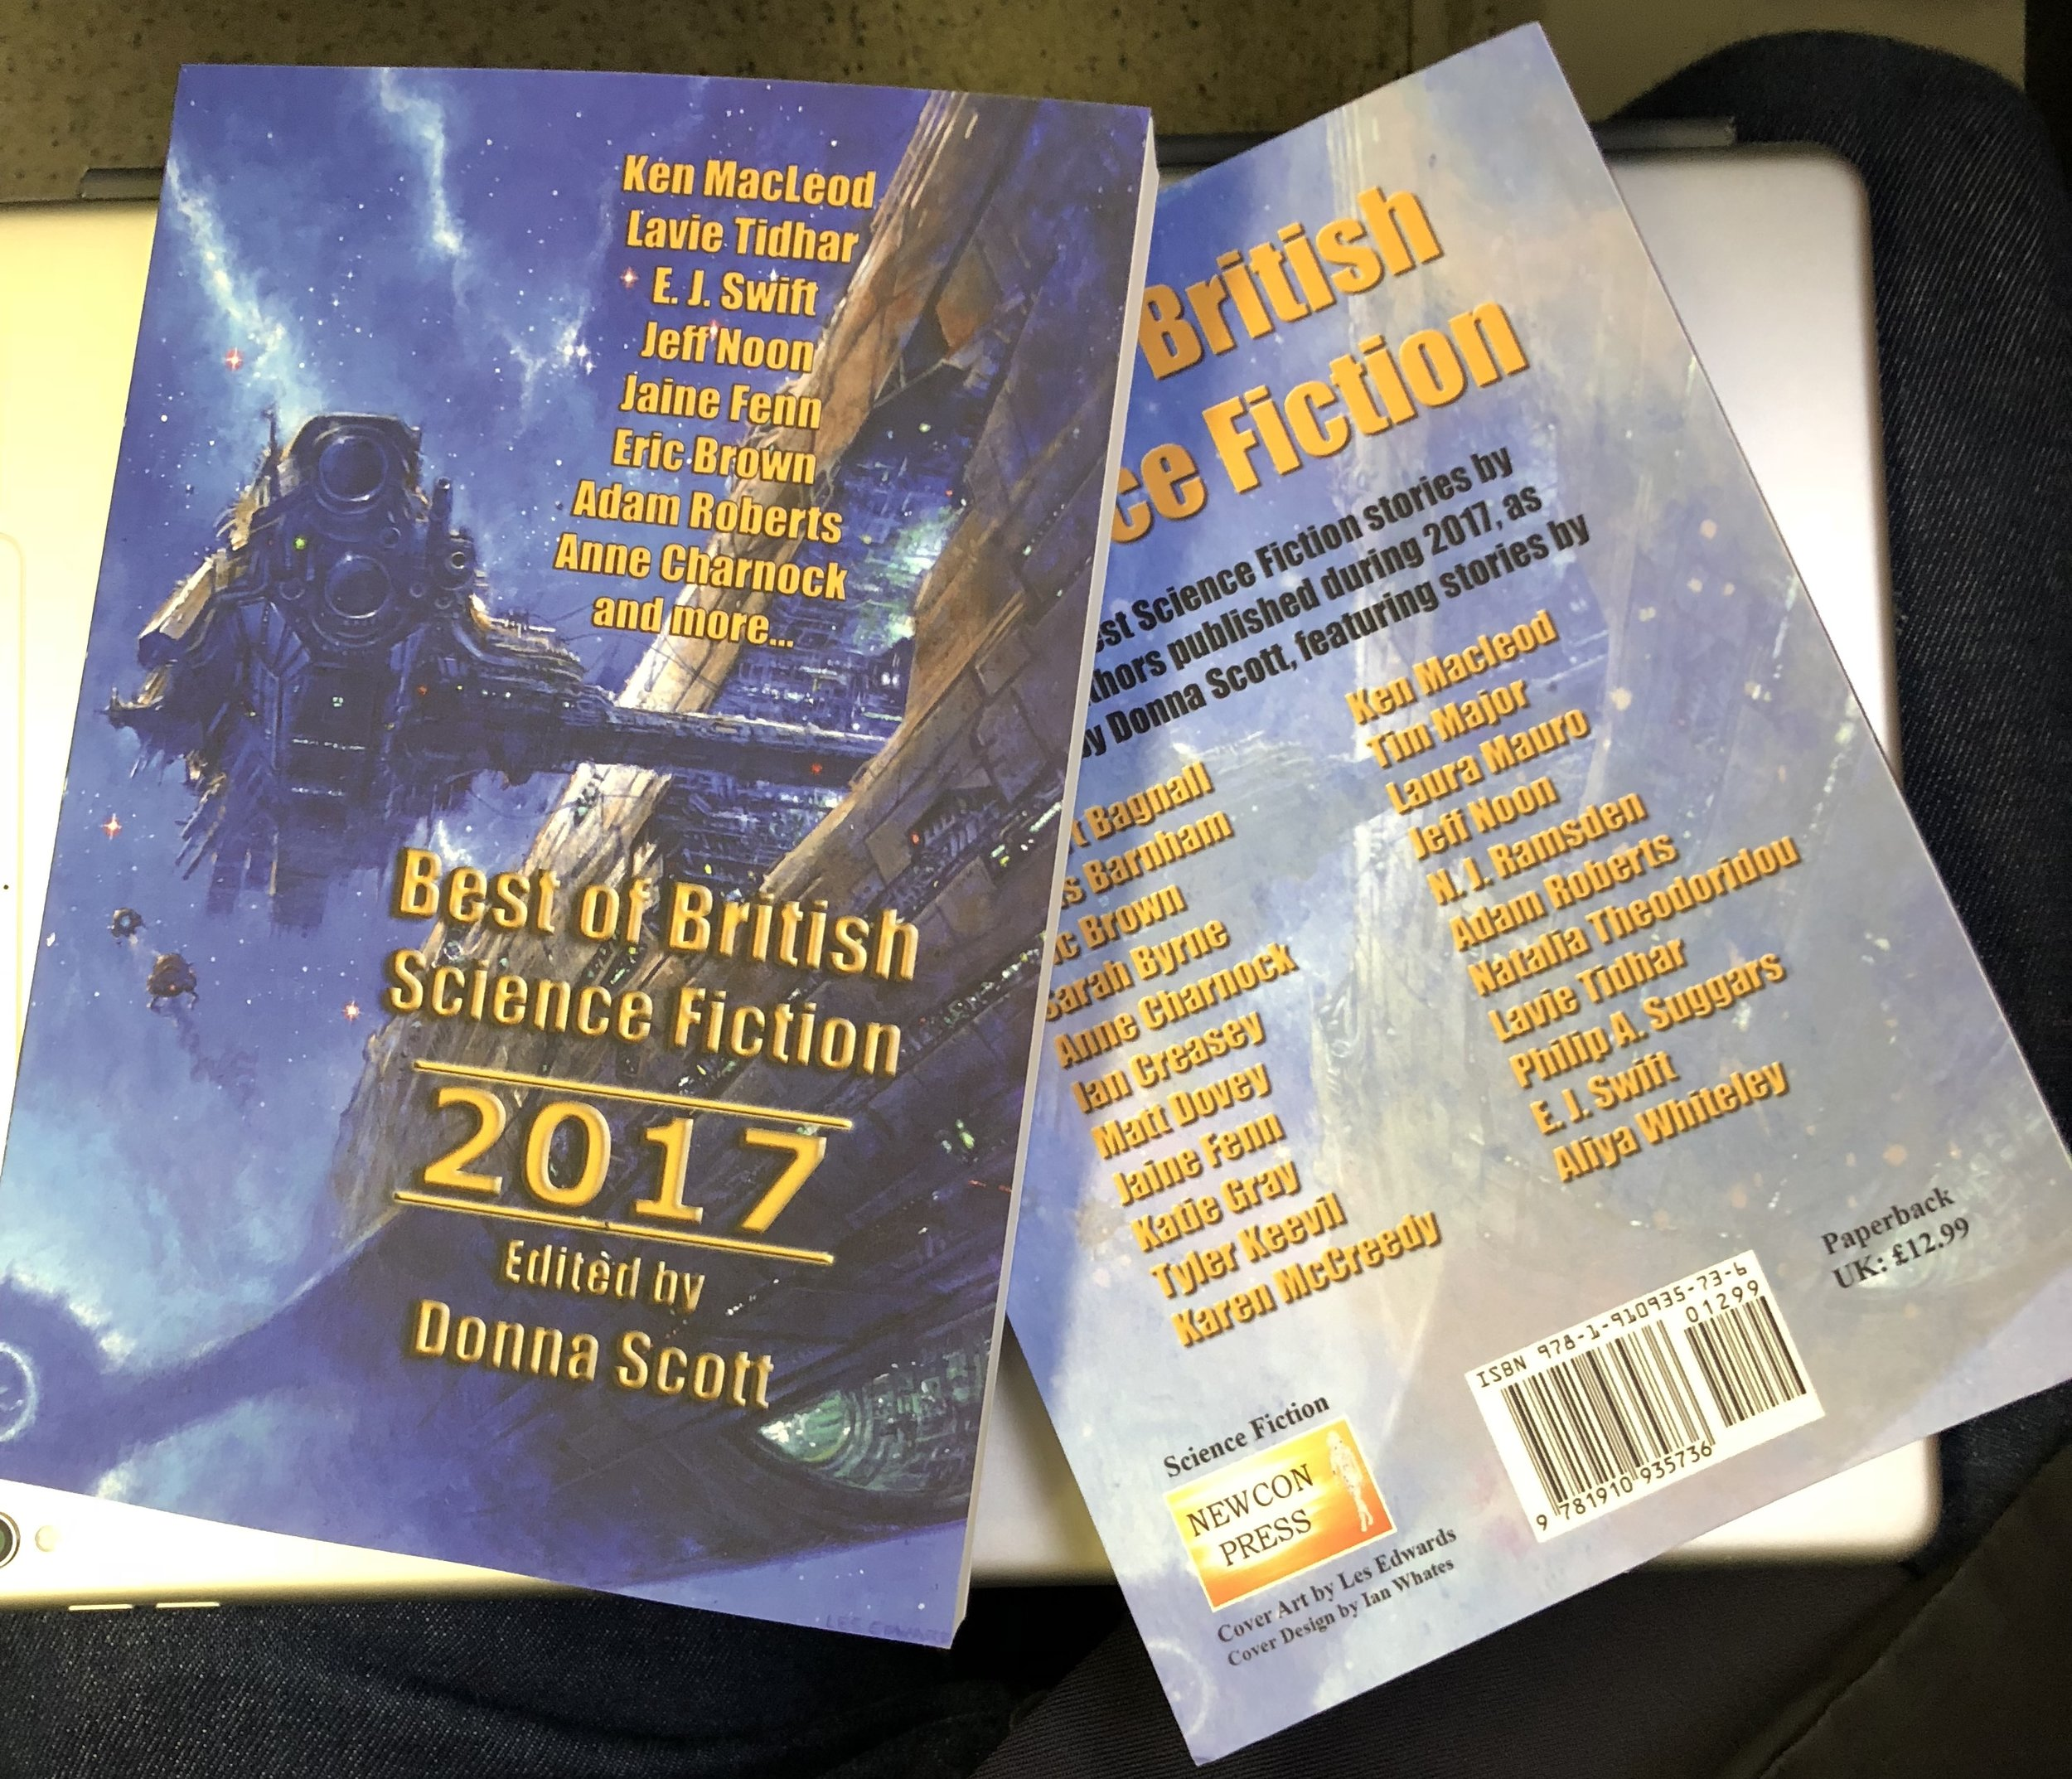 This year's Best of British Science Fiction Anthology.